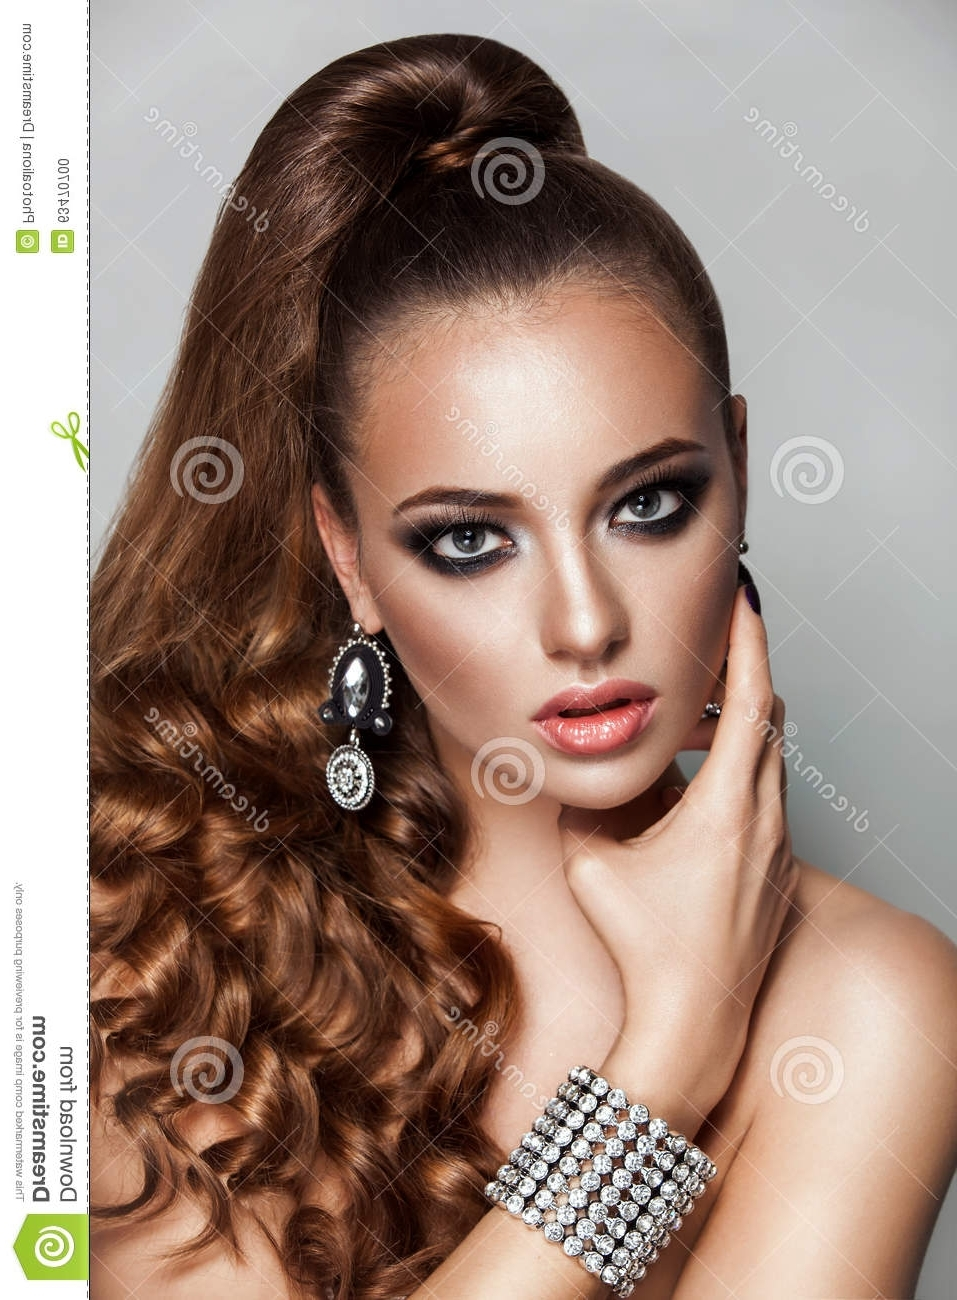 Beauty Brunette Fashion Model Girl With Long Healthy Curly Brown Regarding Well Known Ponytail Hairstyles For Brunettes (Gallery 20 of 20)